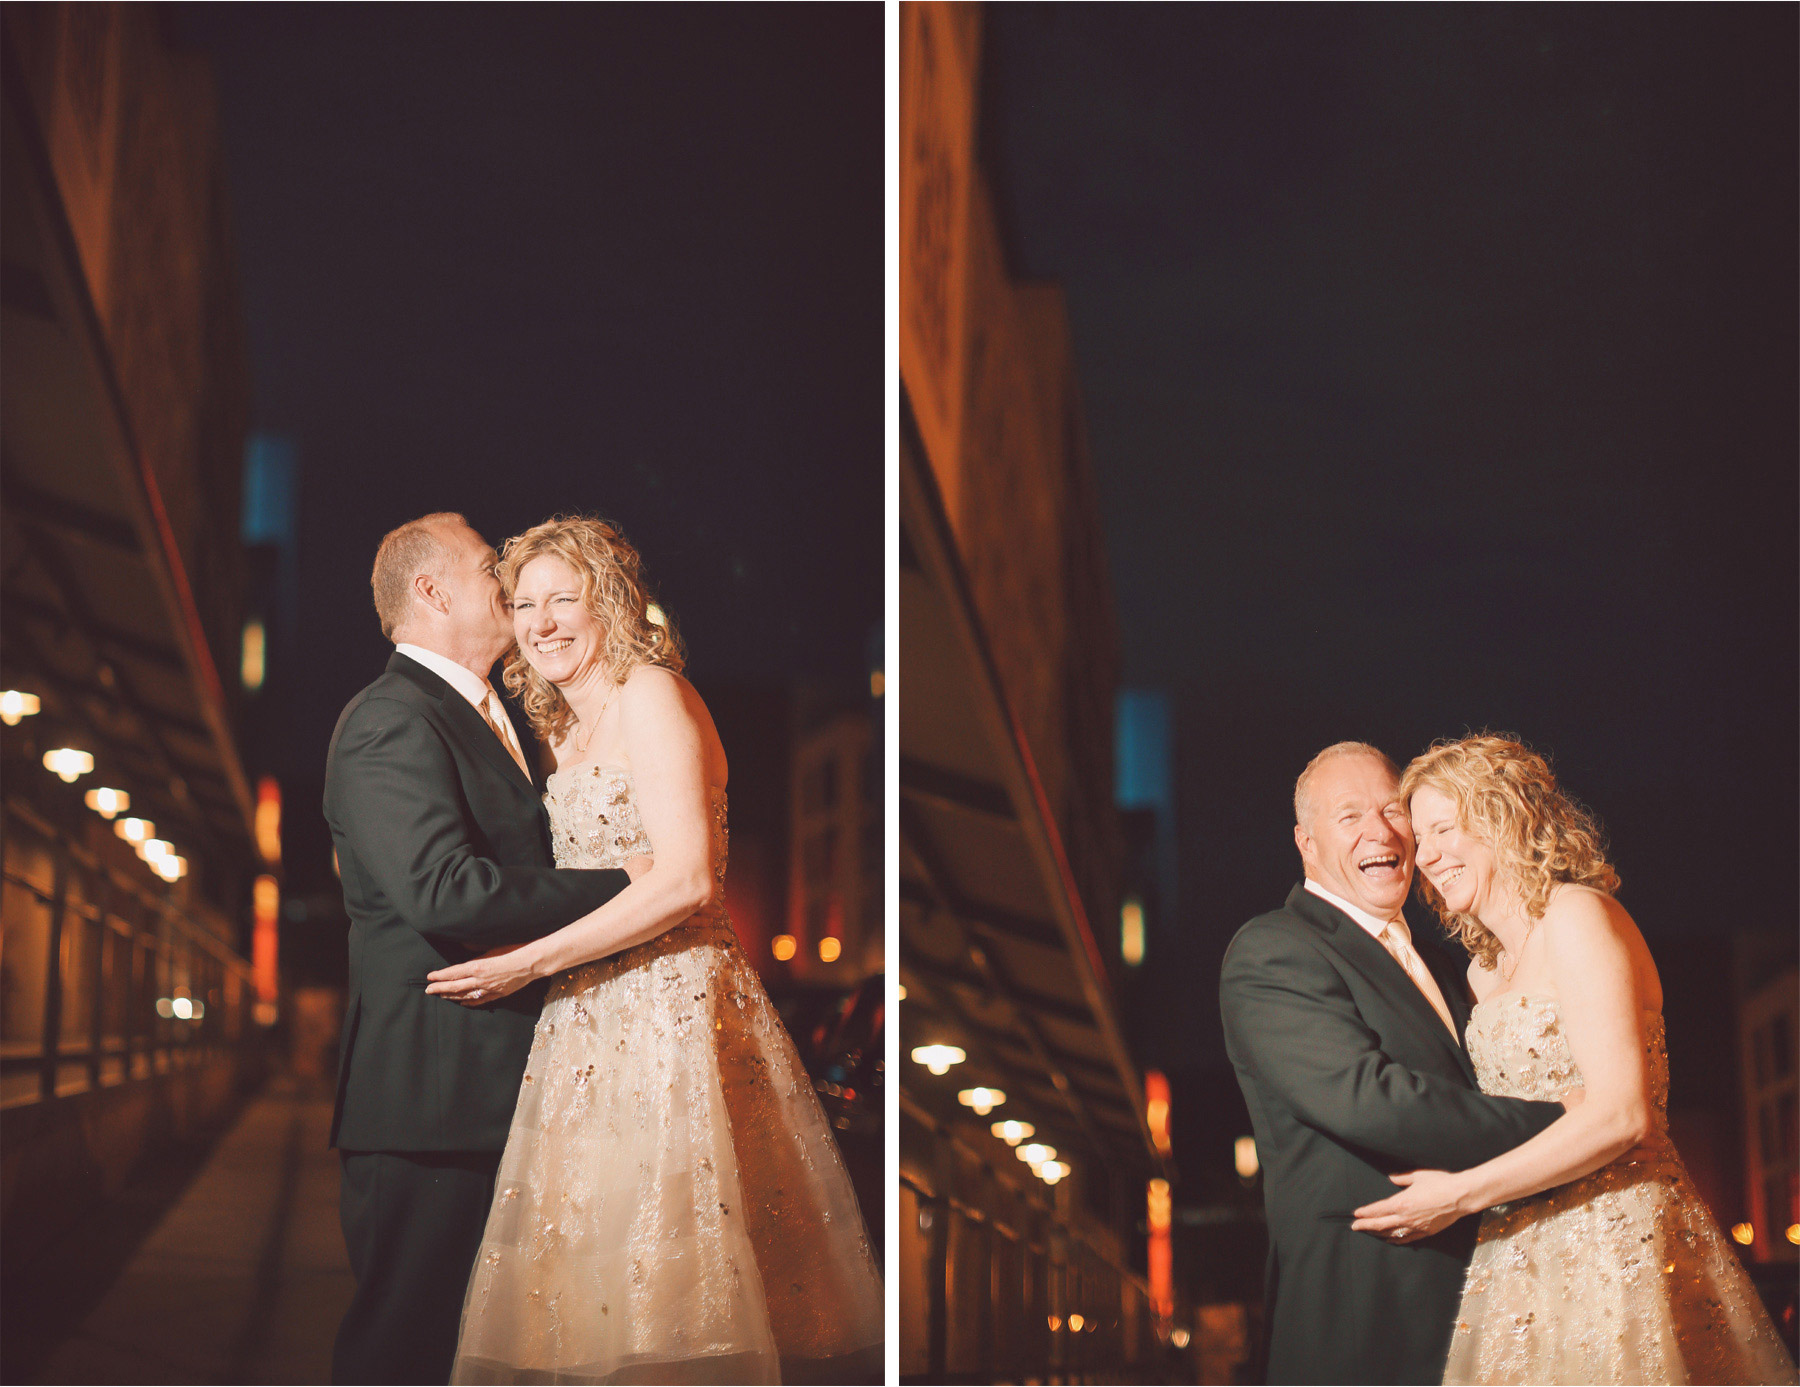 17-Minneapolis-Minnesota-Wedding-Photographer-by-Andrew-Vick-Photography-Spring-Mill-City-Museum-Downtown-Bride-Groom-Embrace-Kiss-Night-Vintage-Dannette-and-Darren.jpg